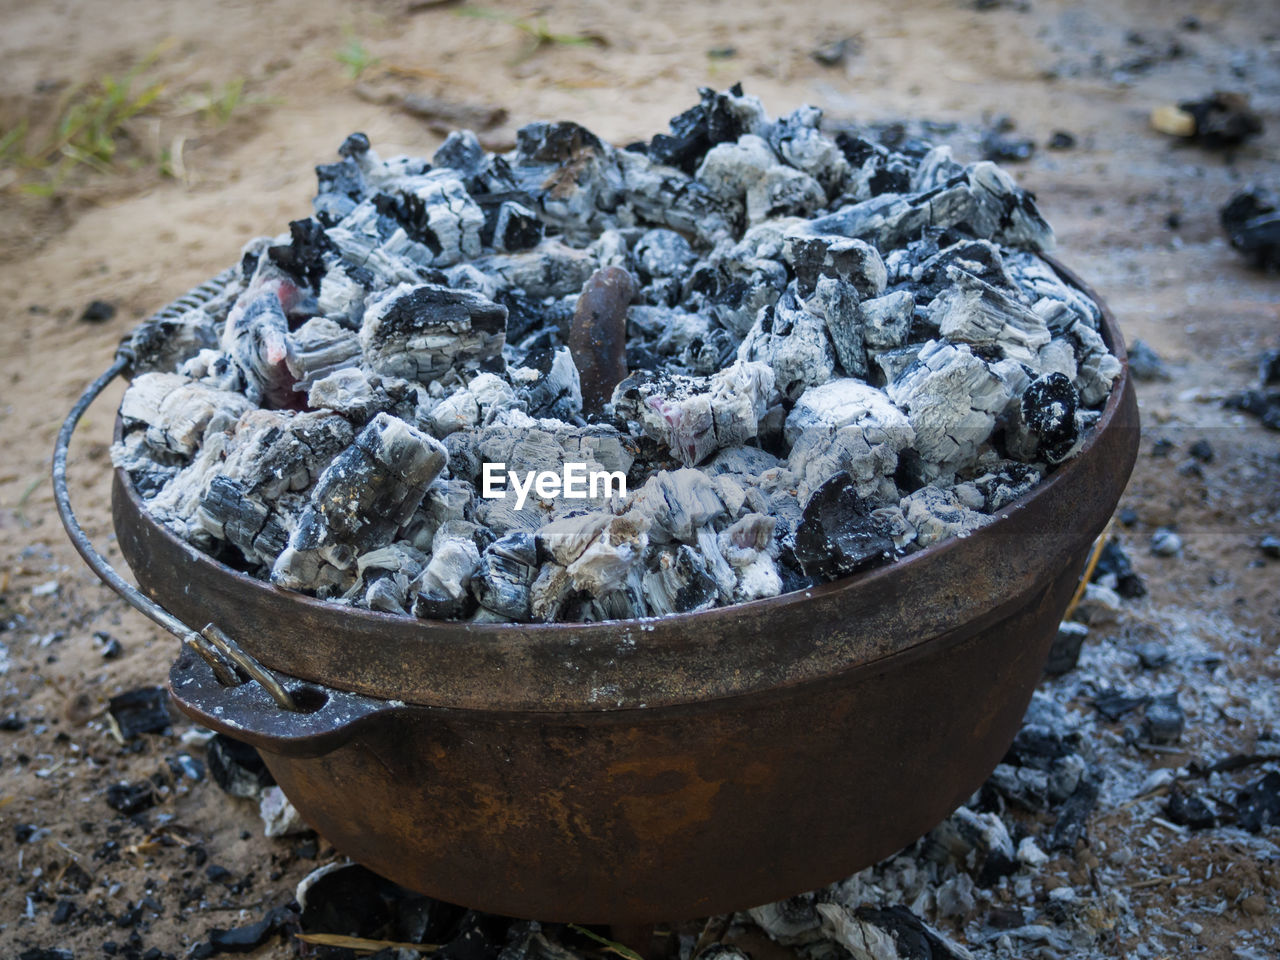 High Angle View Of Cast Iron Pot With Coal